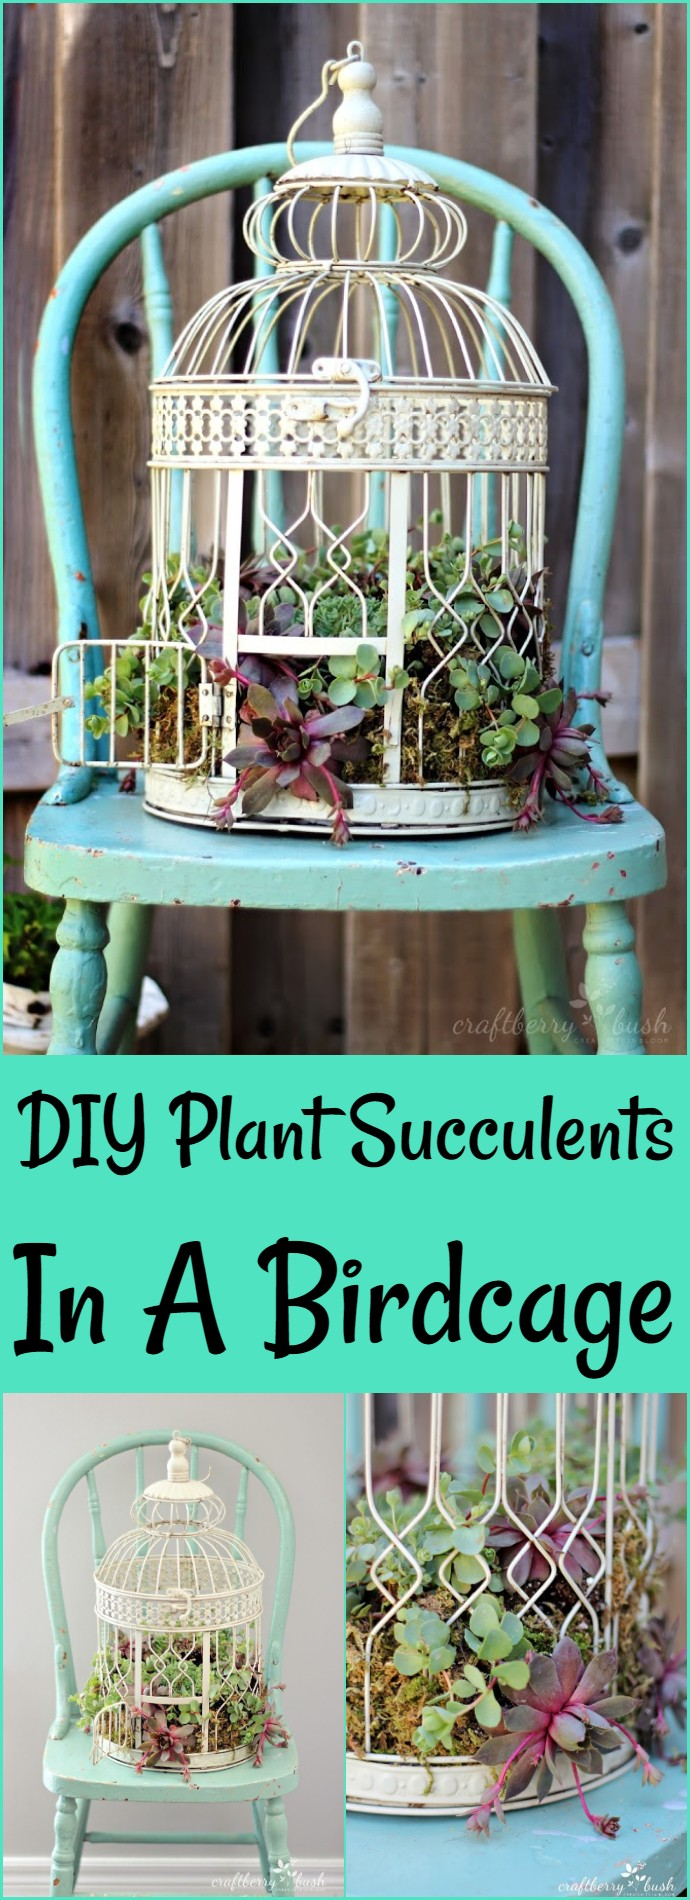 DIY Plant Succulents In A Birdcage